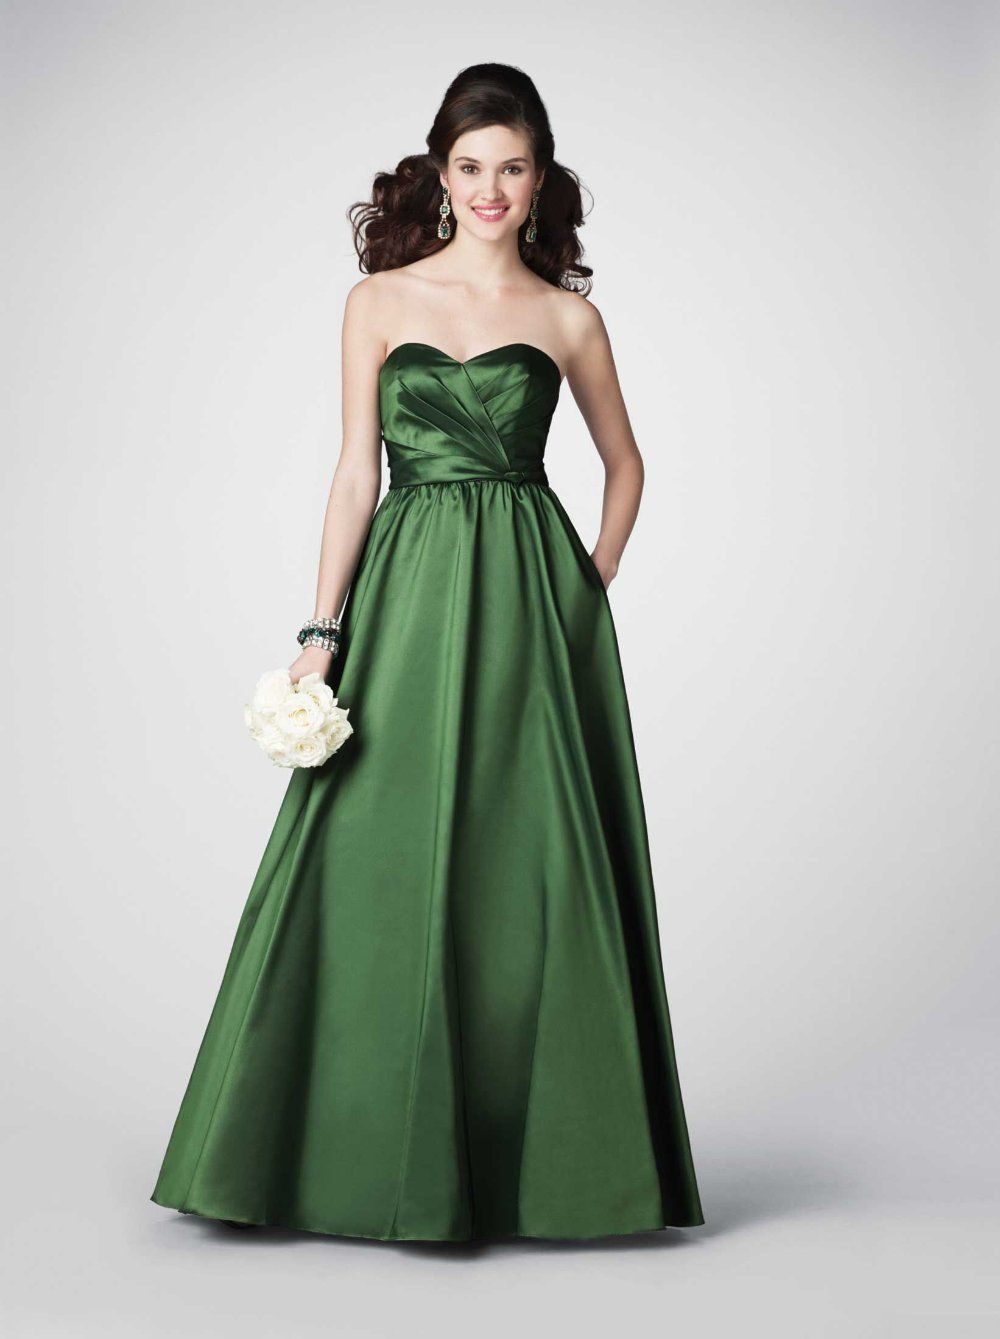 Wedding Green Wedding Dresses 78 best images about wedding dress ideas on pinterest elegant 10 green dresses lime weddings and teenage hairstyles